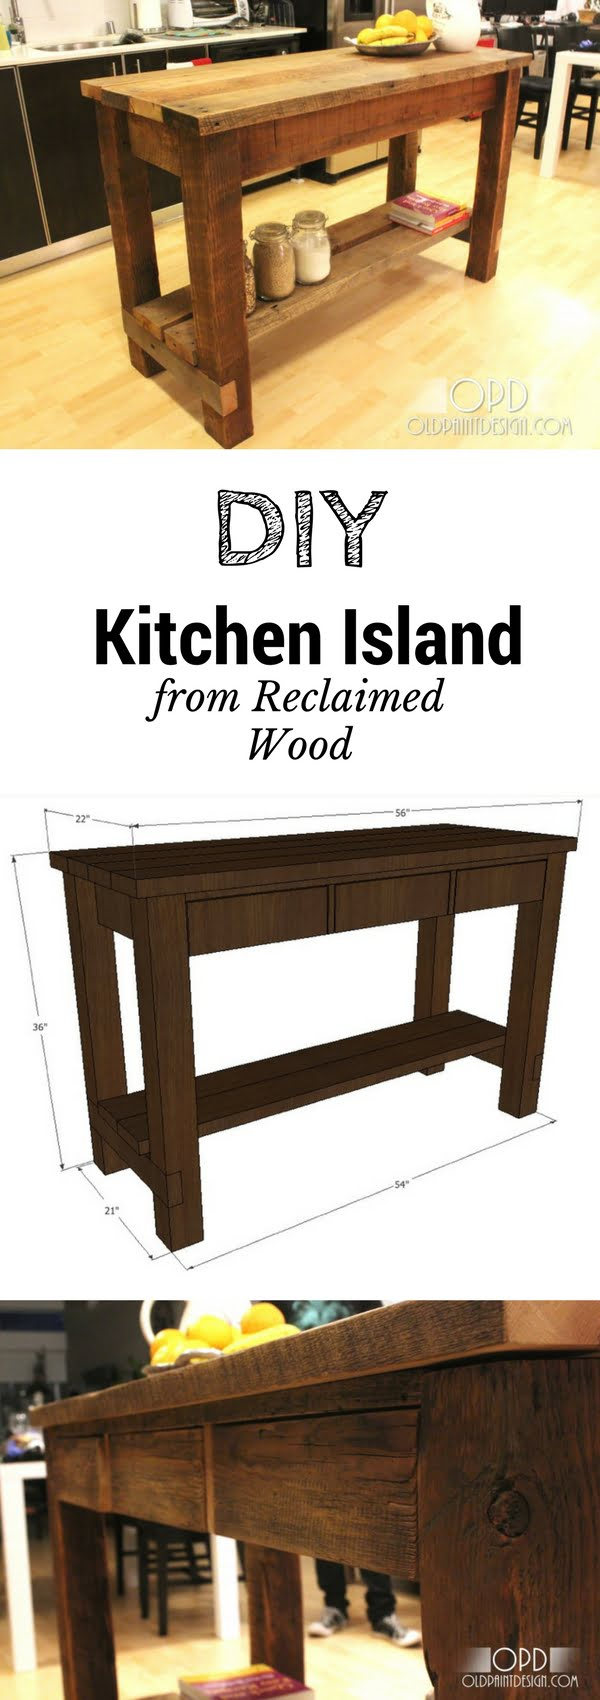 DIY reclaimed wood kitchen island